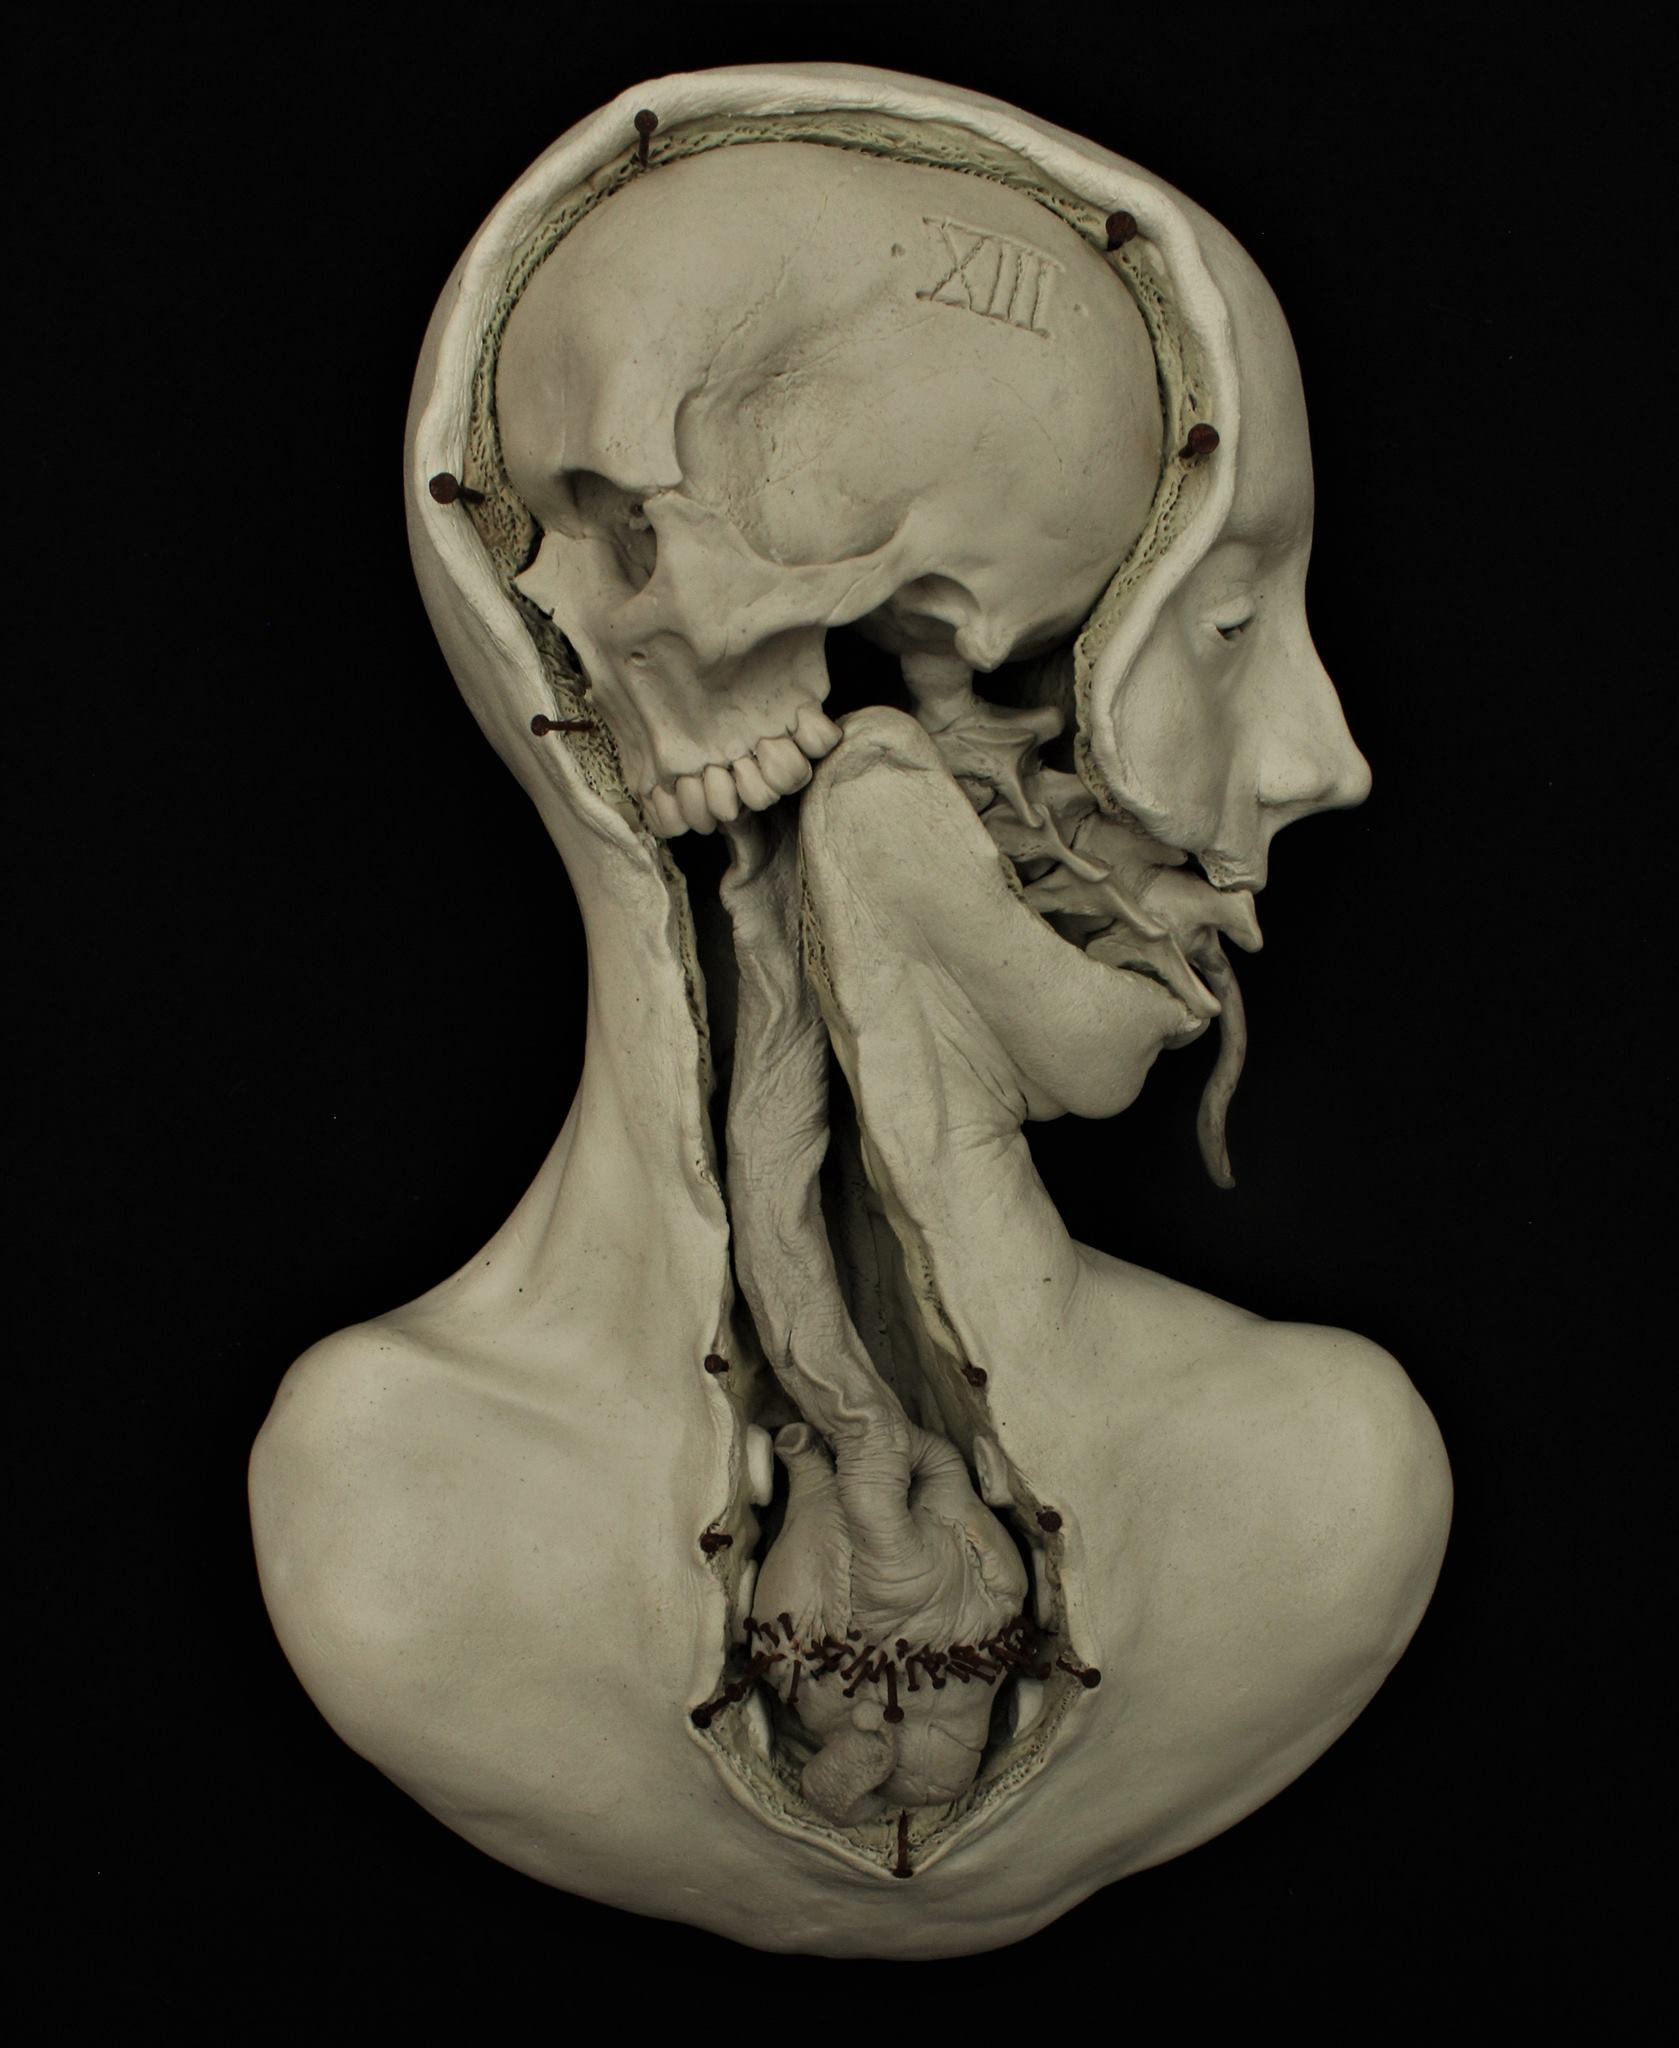 Emil Melmoth, Sculptures – Death as The Arcane XIII (Transfiguration)